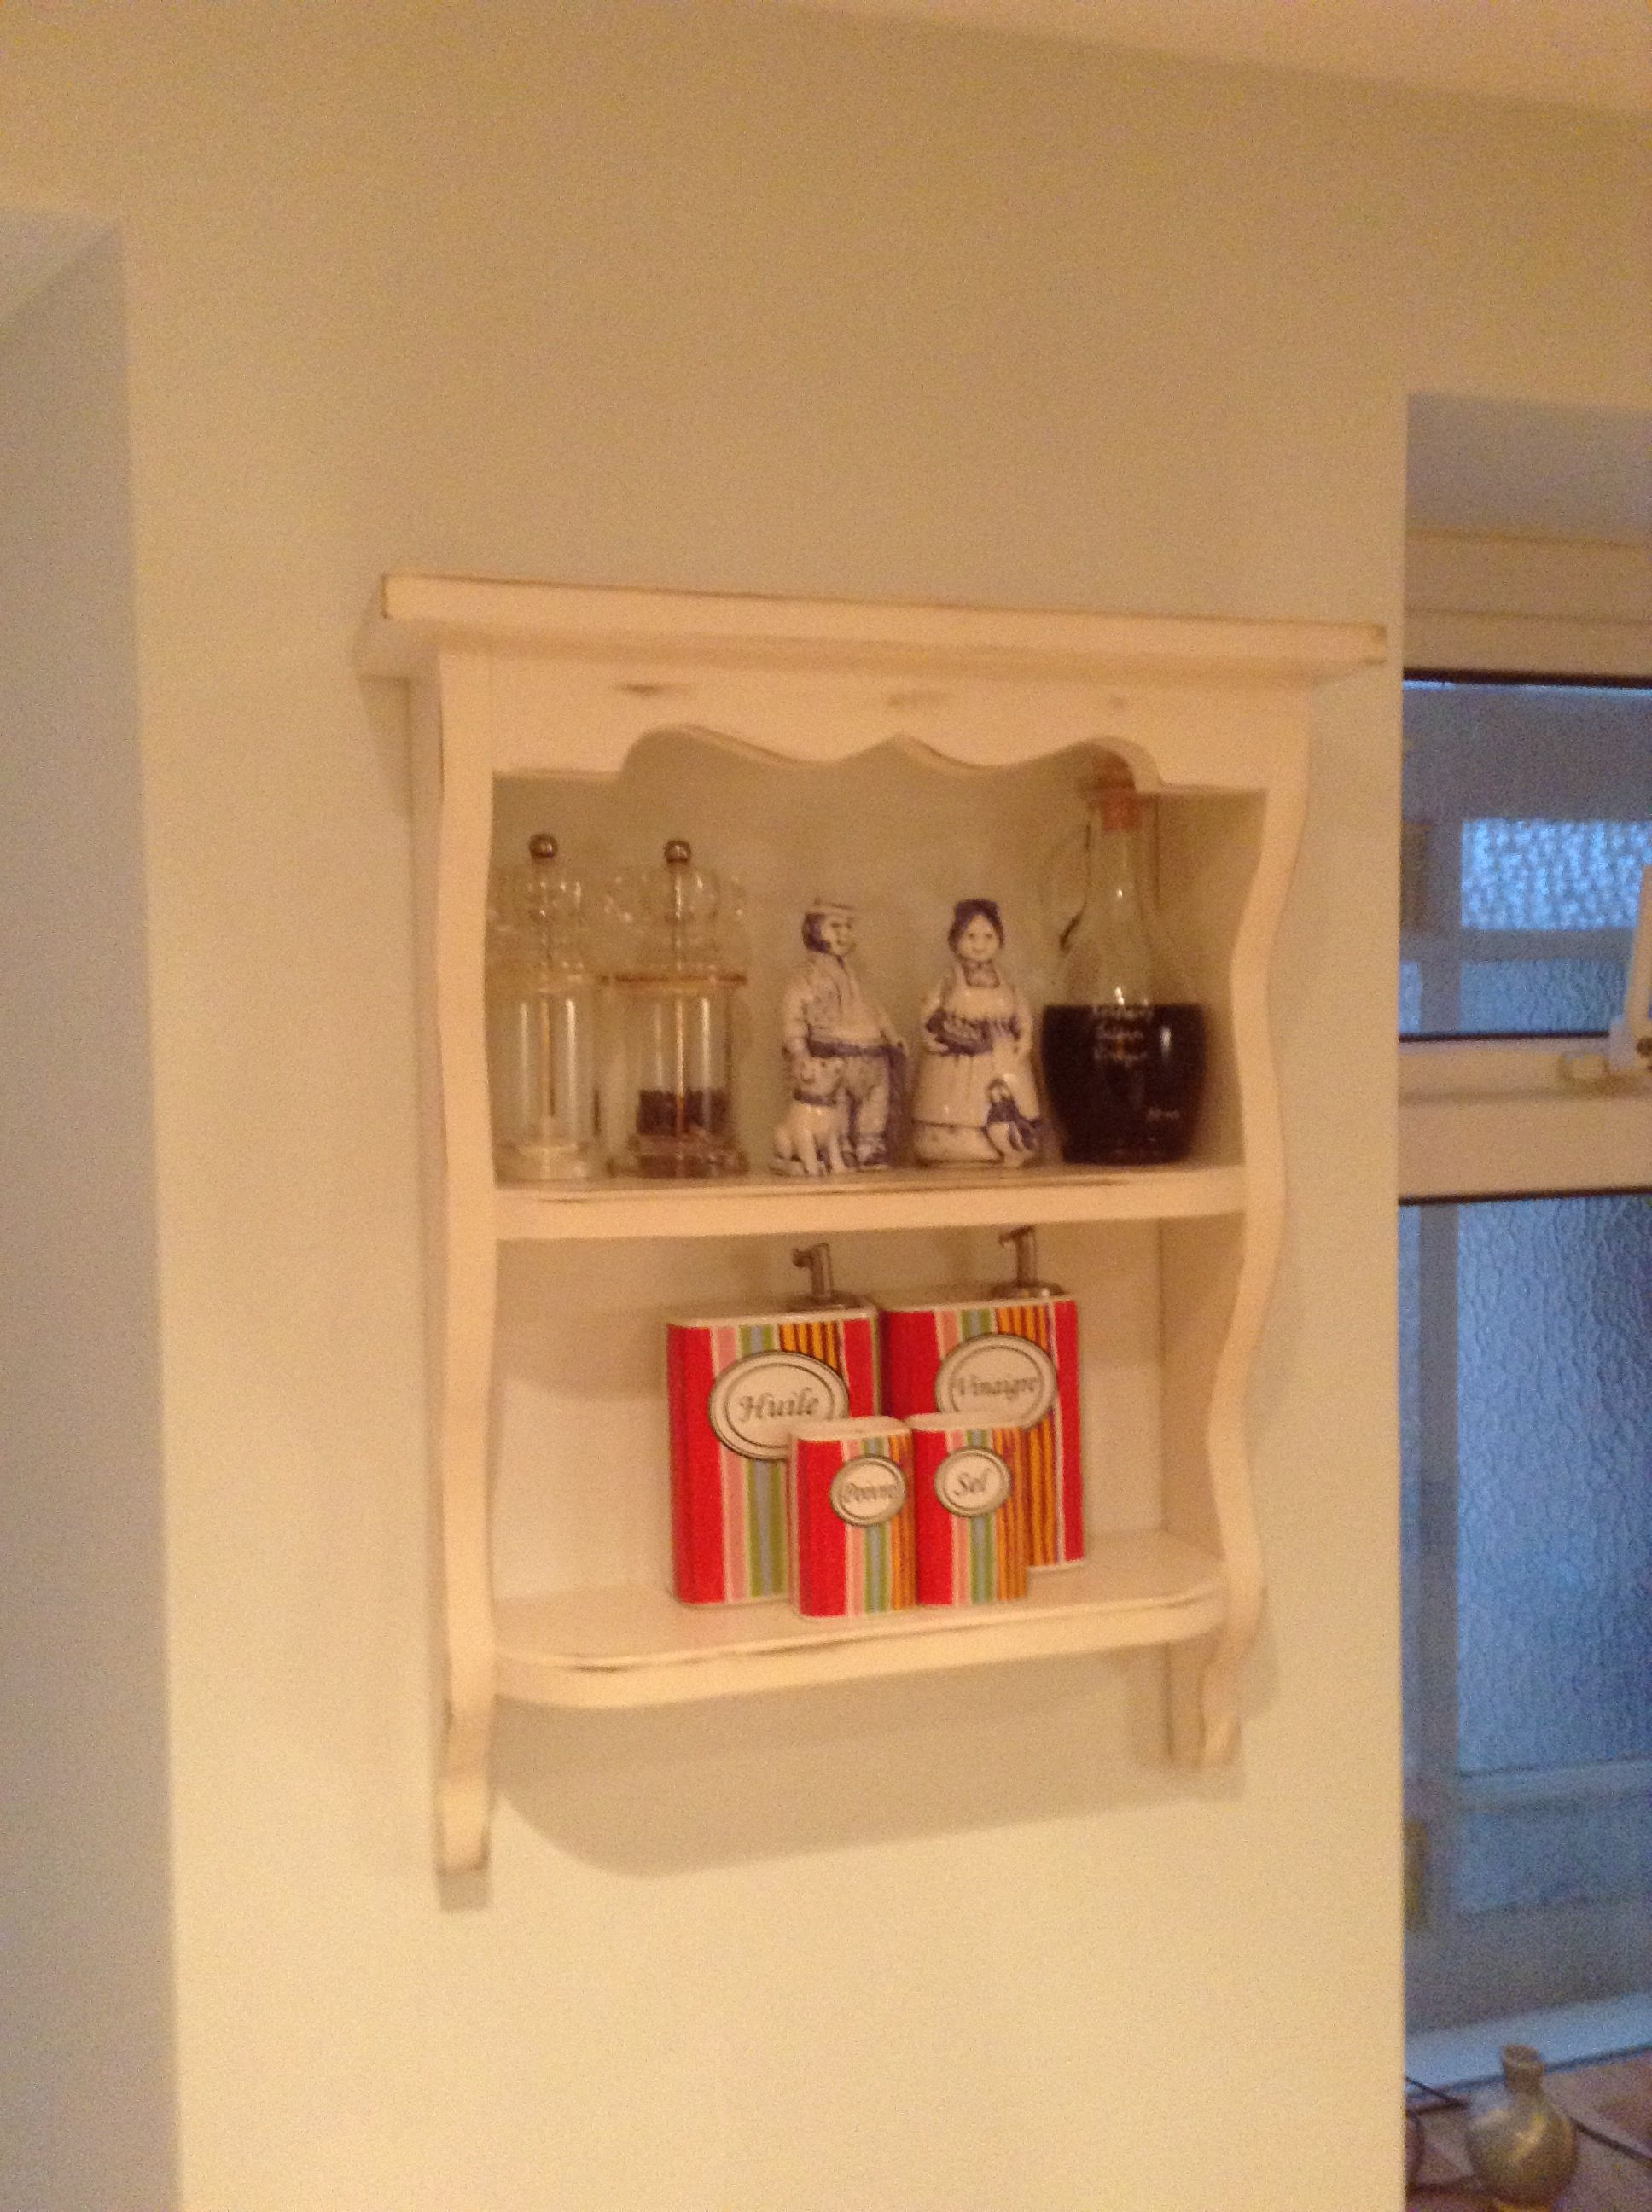 Shelves from E-bay for my lovely salt and pepper Farmer and his wife.